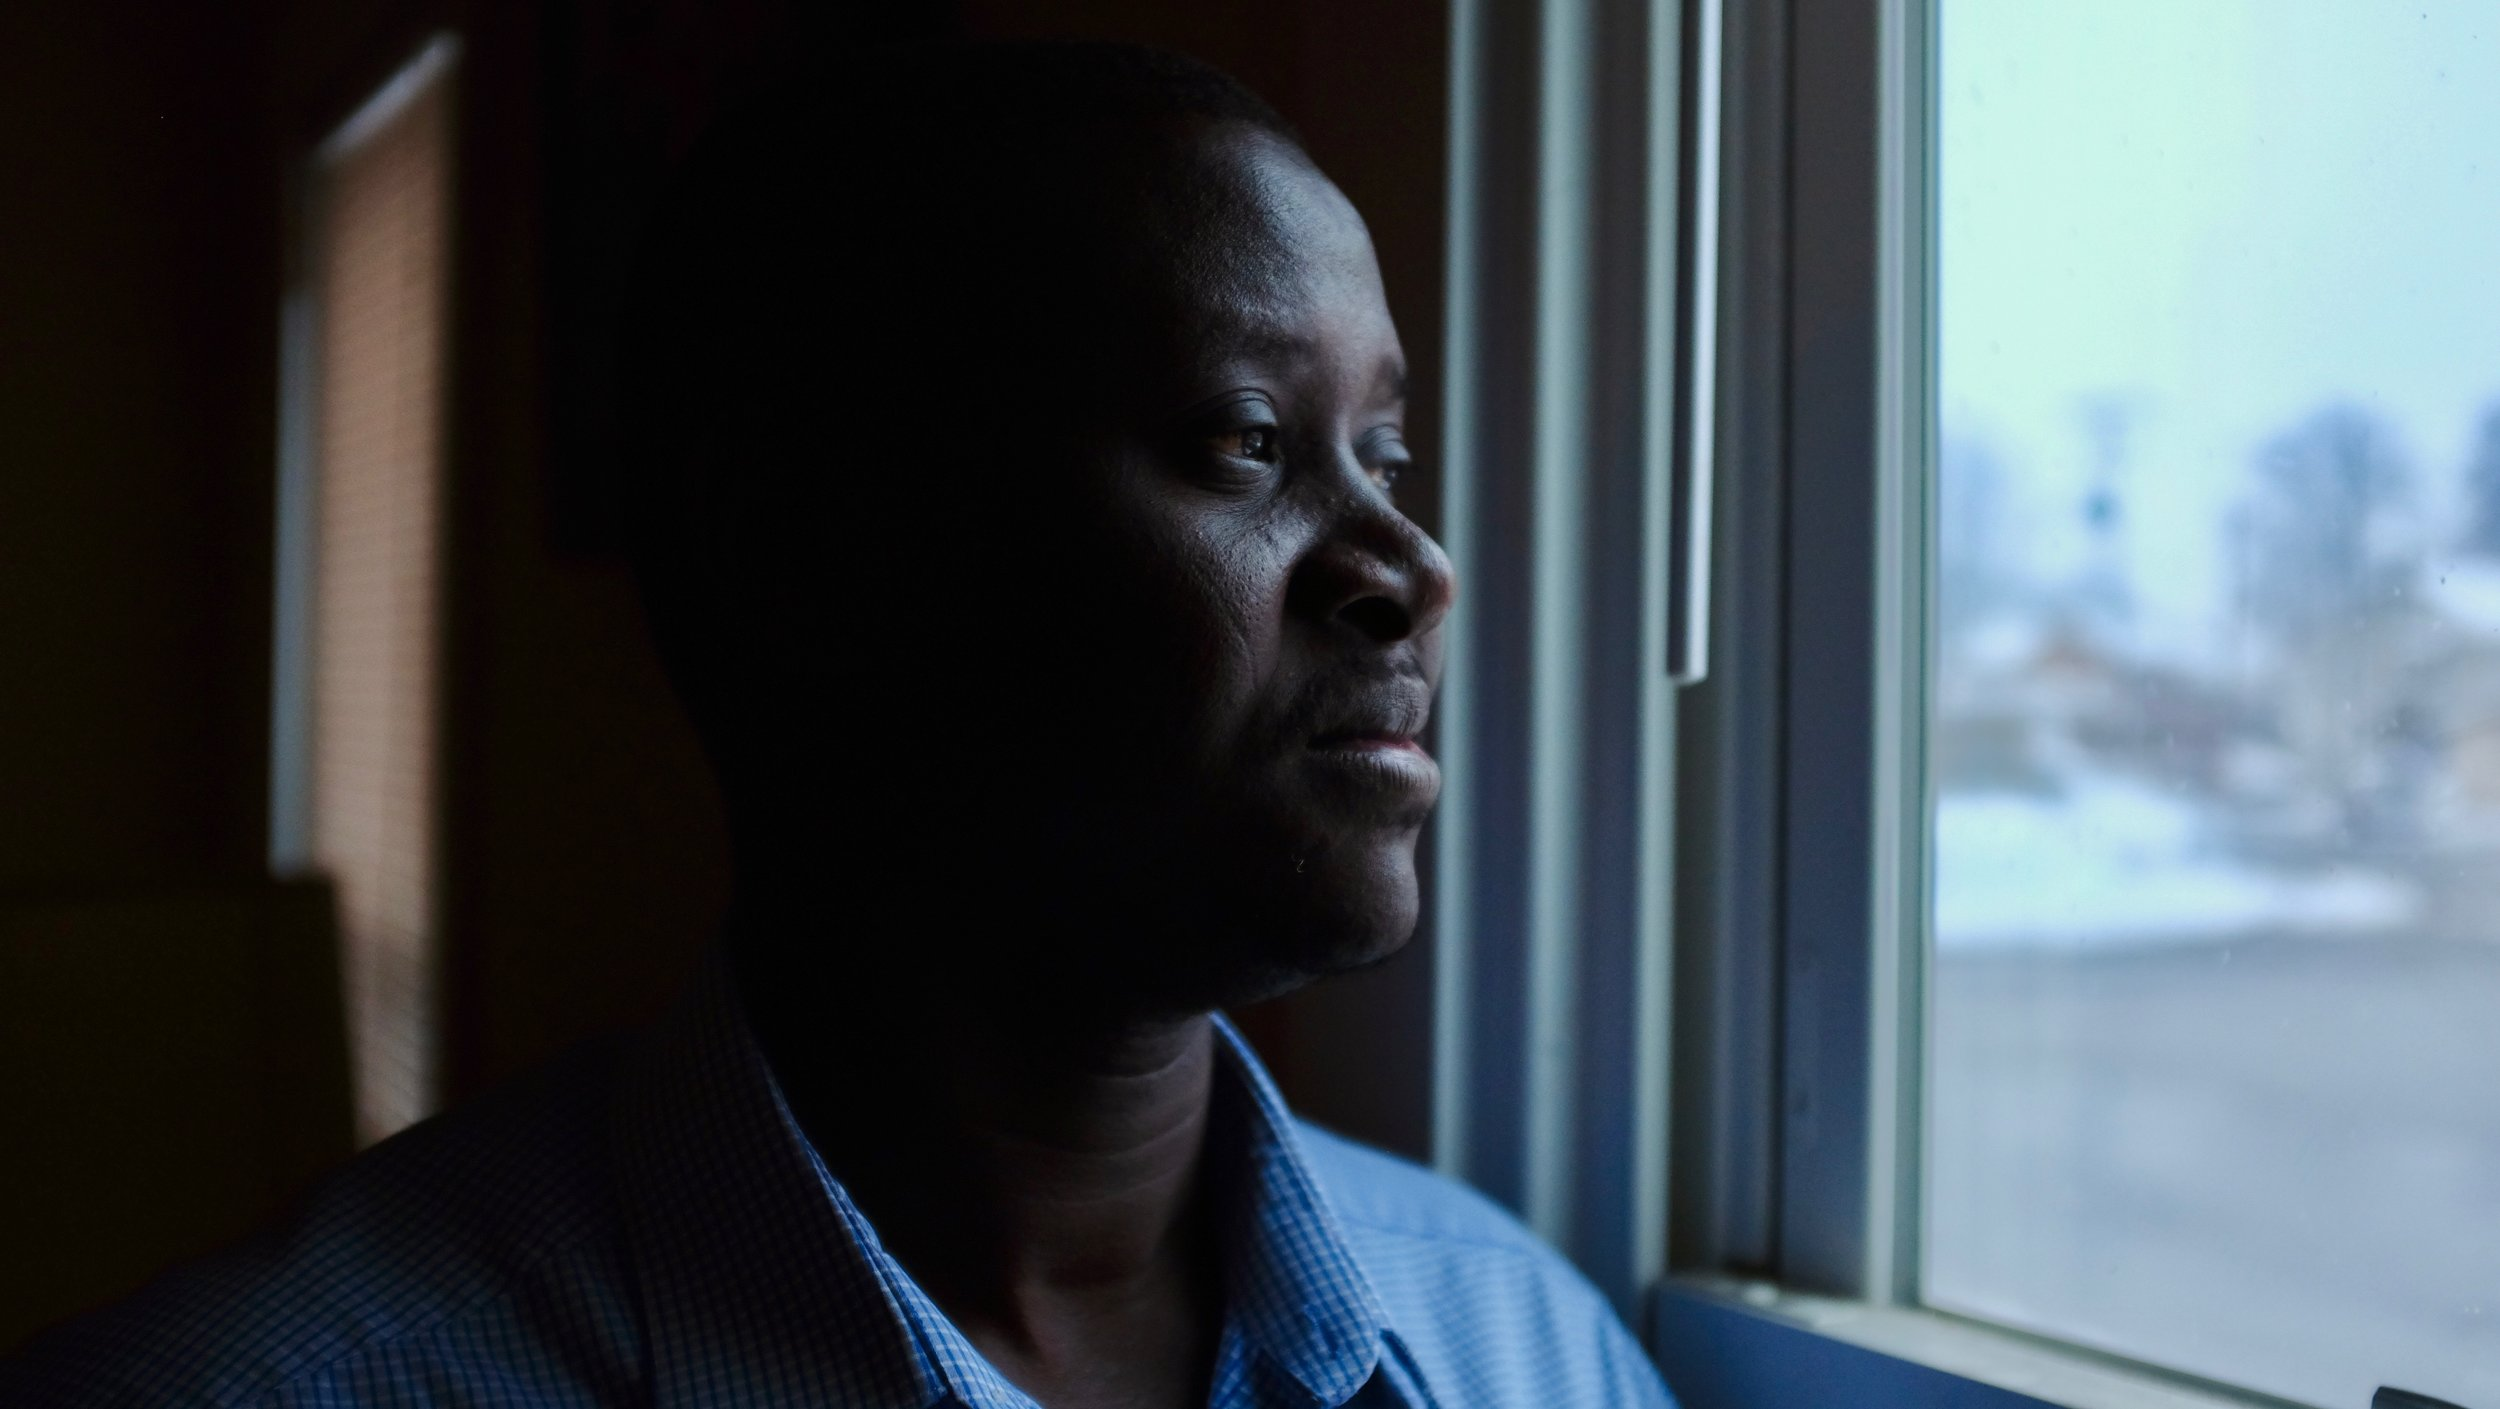 James Magot, a former  Lost Boy  refugee from Southern Sudan living in Lancaster, PA since 2001. James will portray a version of himself in our film,  Creek Don't Rise.